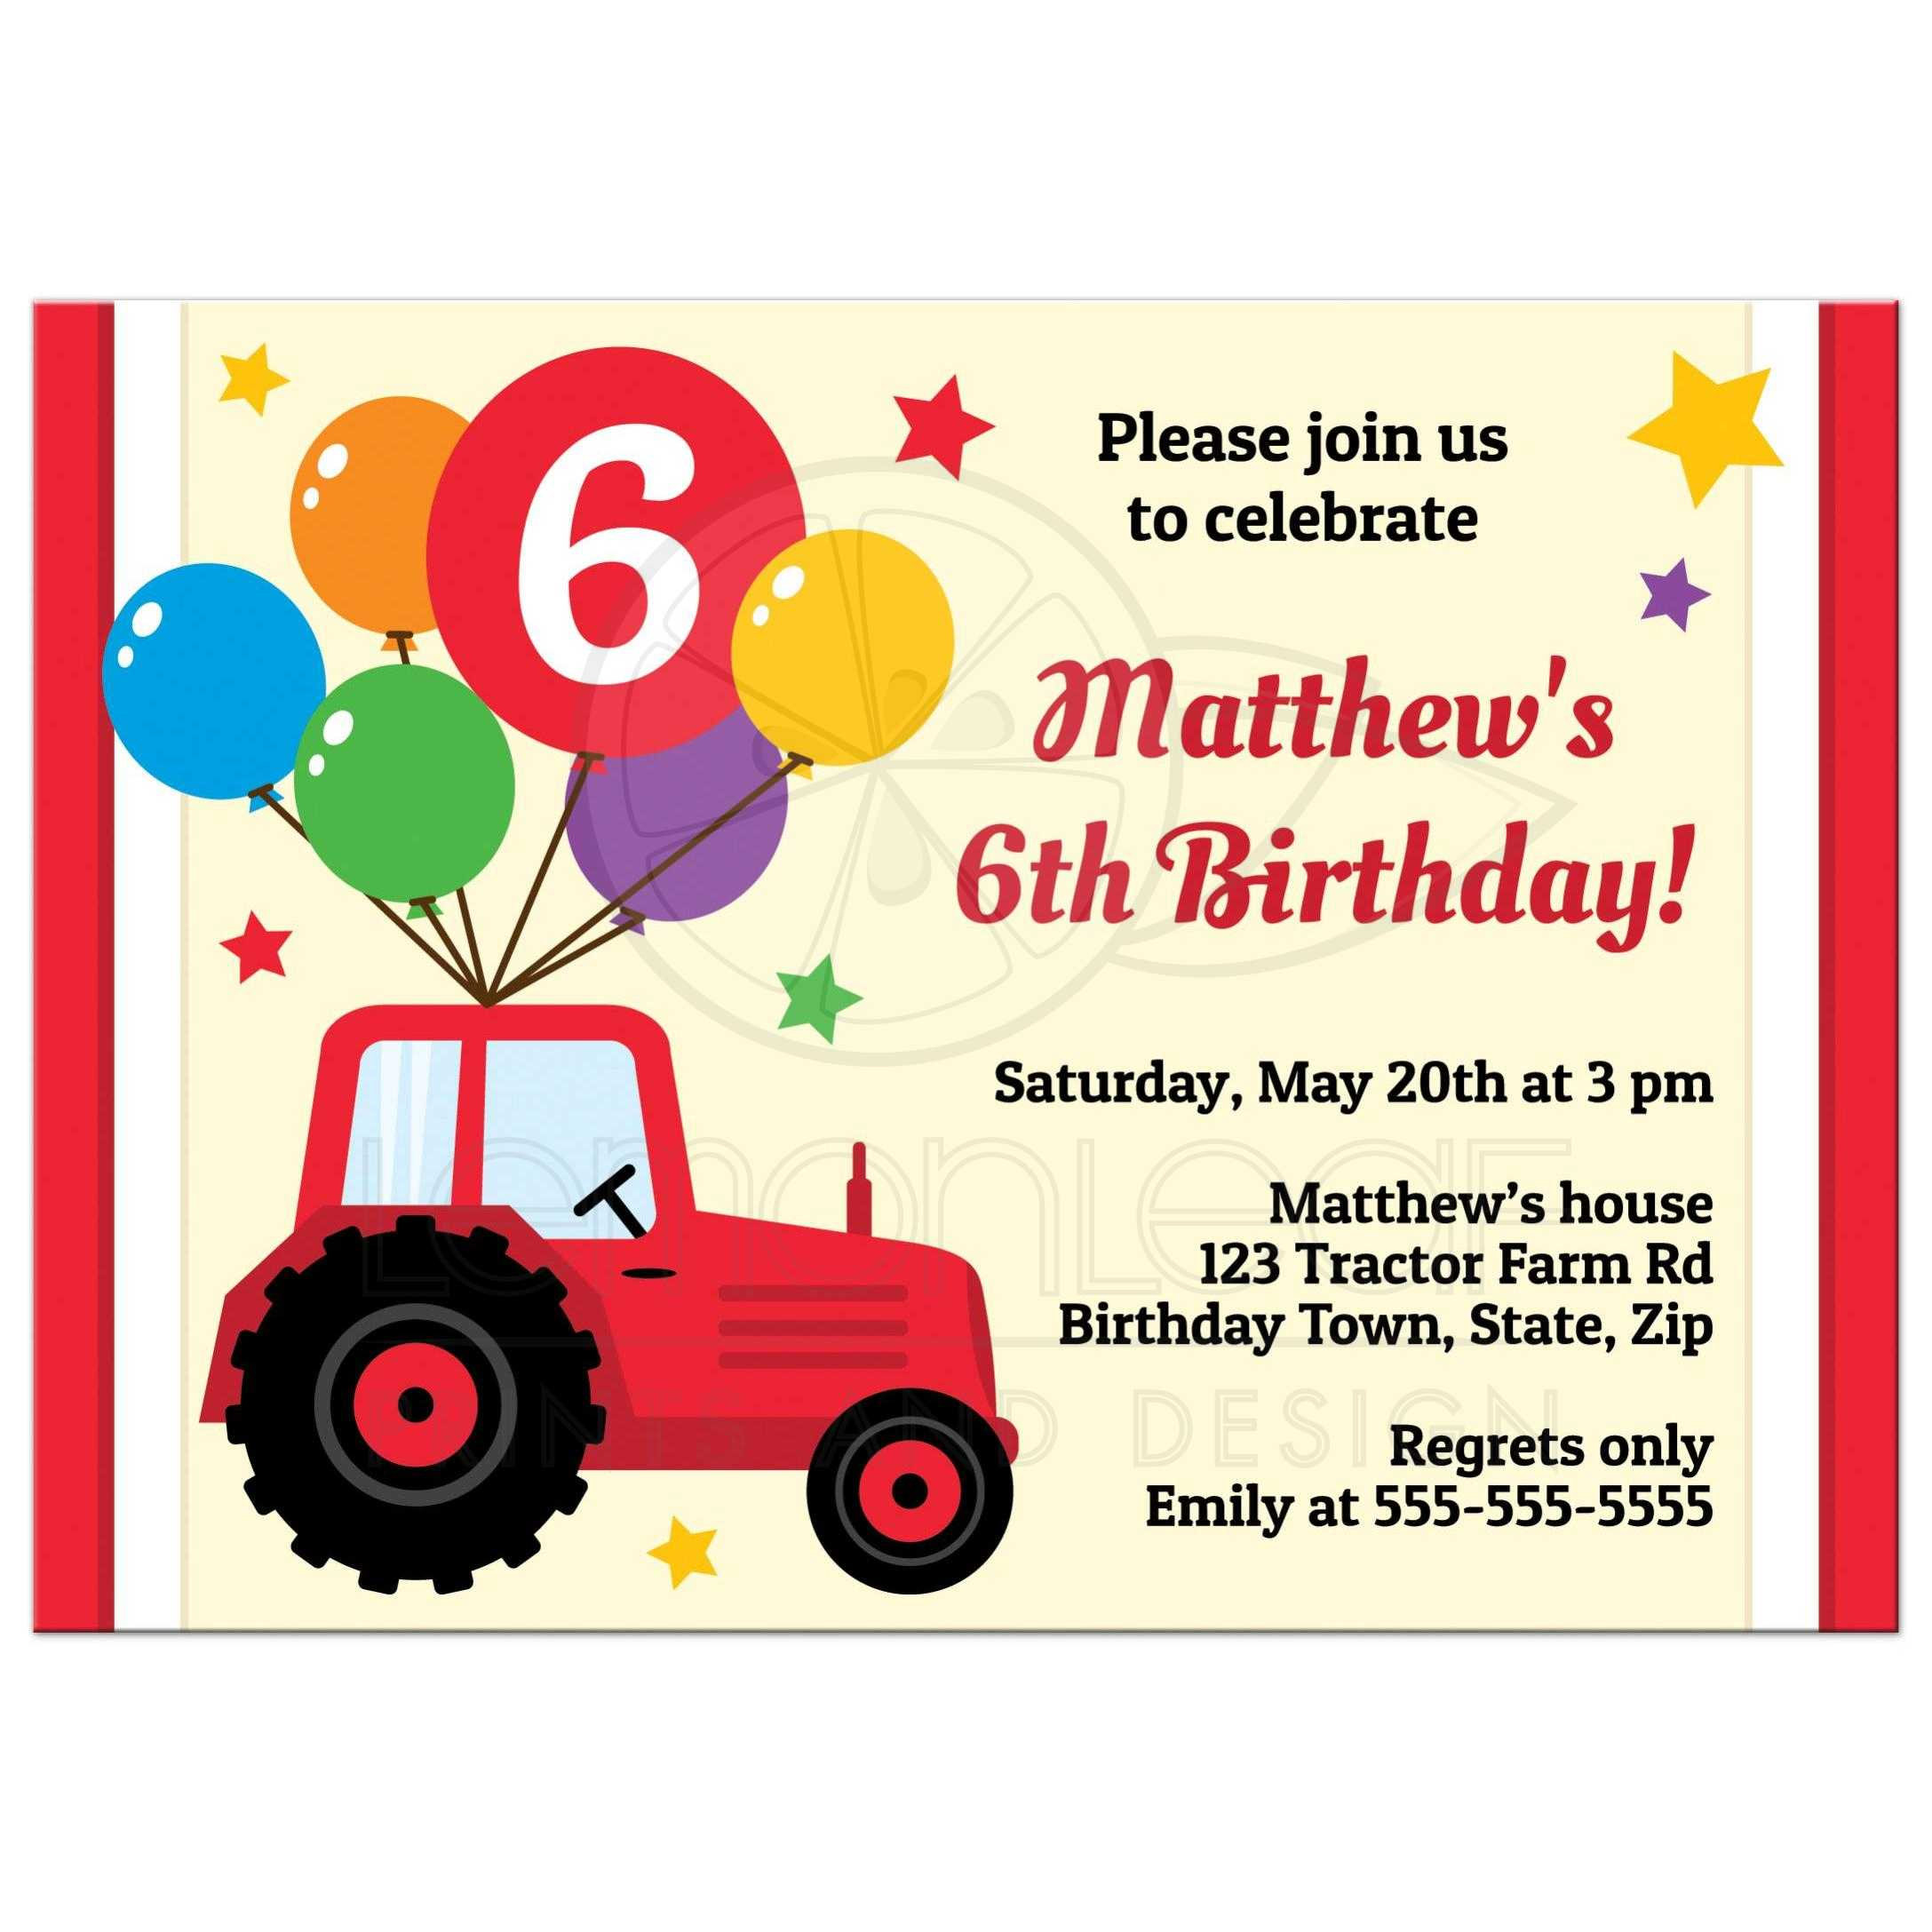 Birthday invitation for kids with red tractor, balloons and custom age